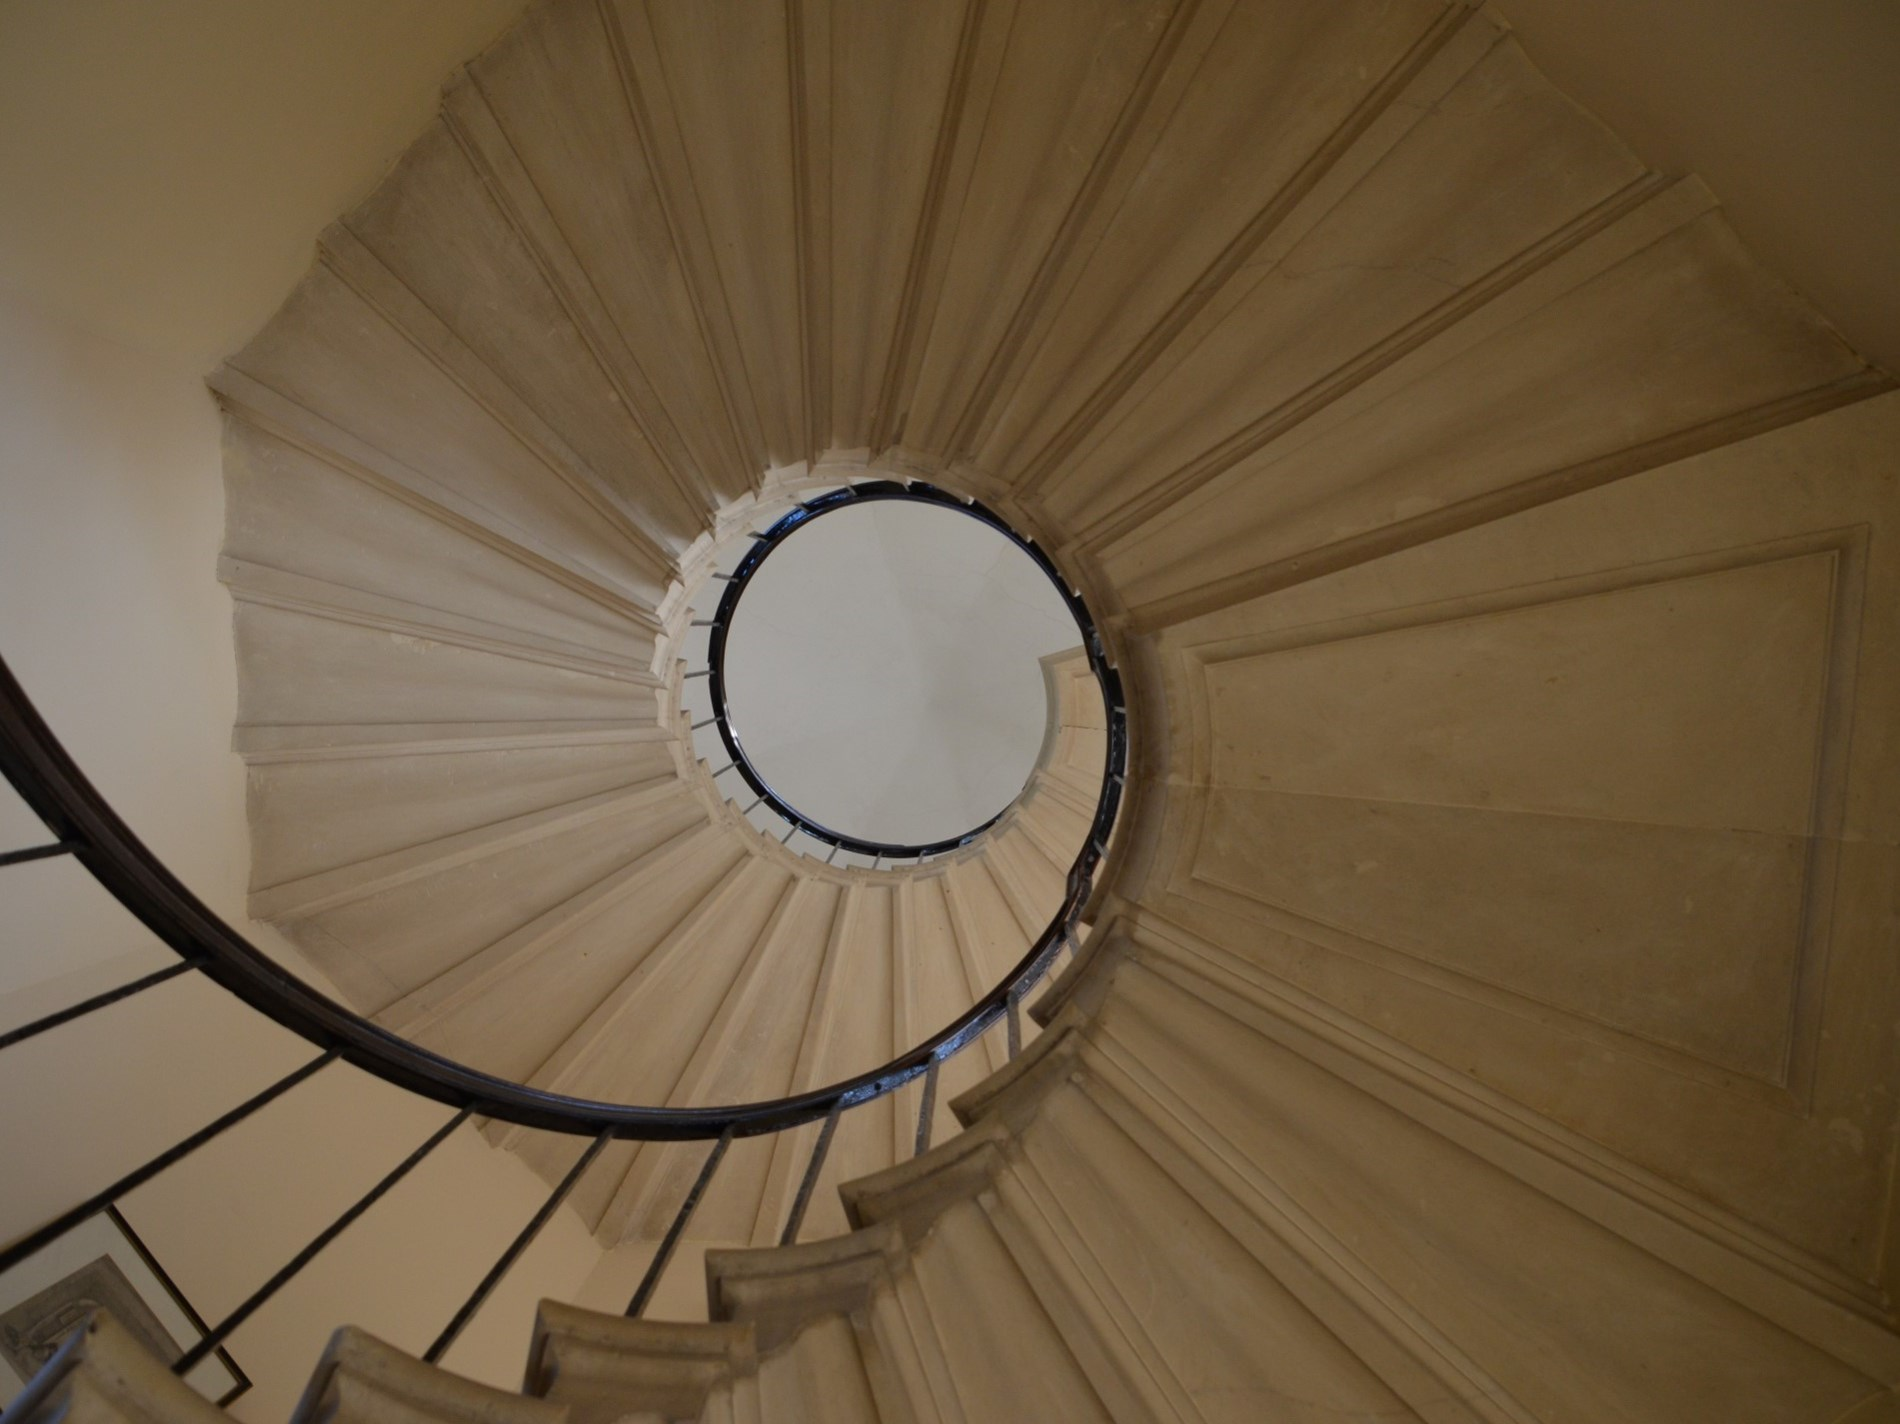 Looking up at this unique sprial staircase